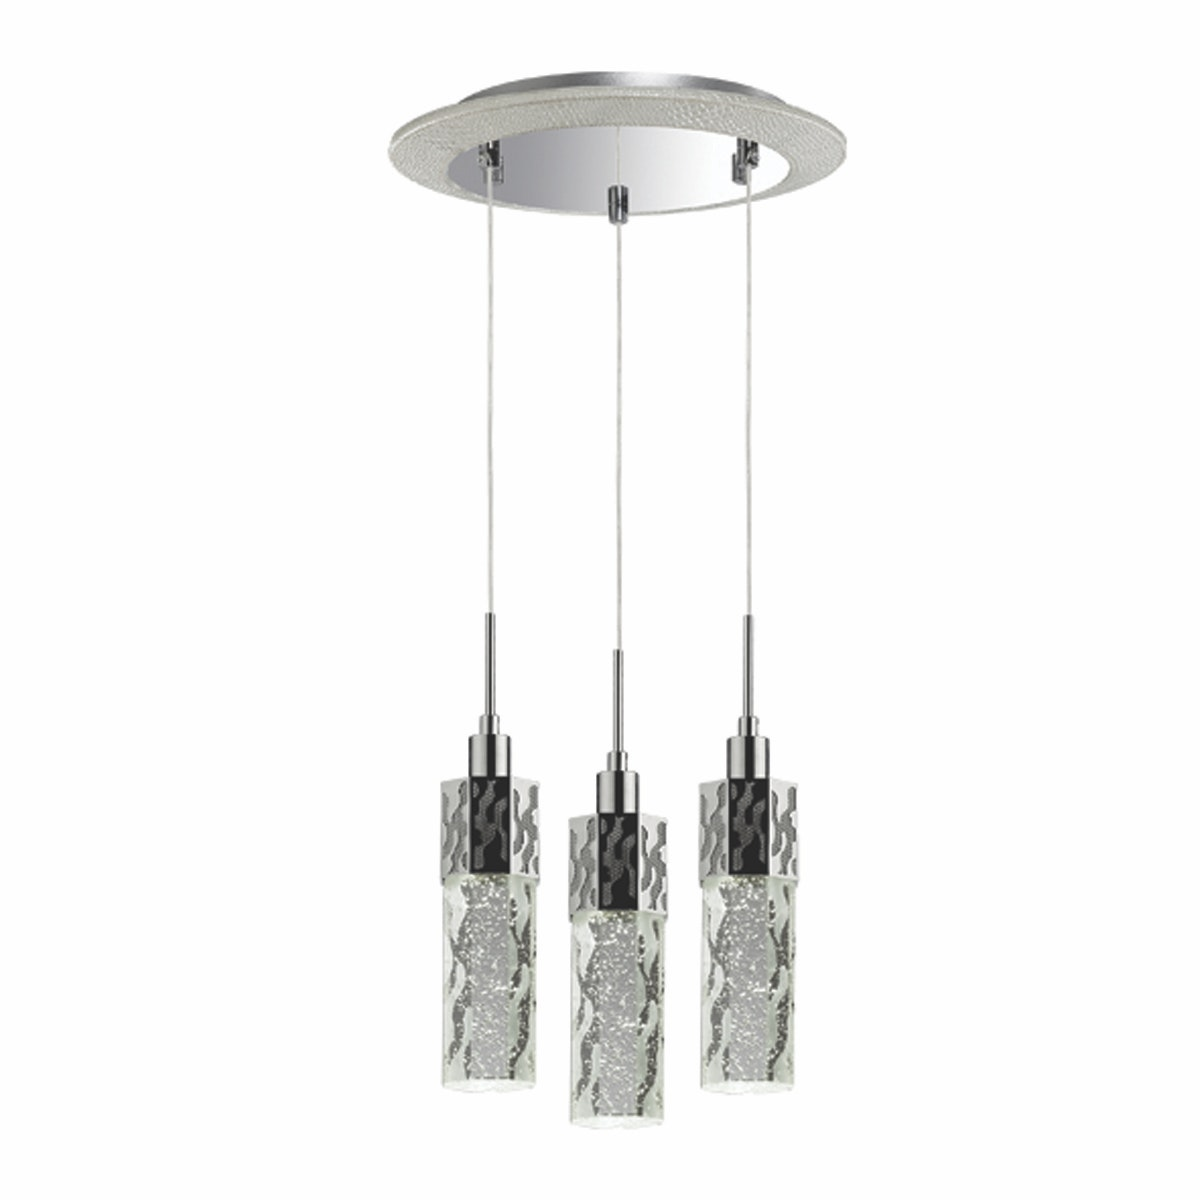 3+Projects Lampu Gantung 3 Pendant Round Bubble Crystal 3+DL-HD1302-3Bb-VG